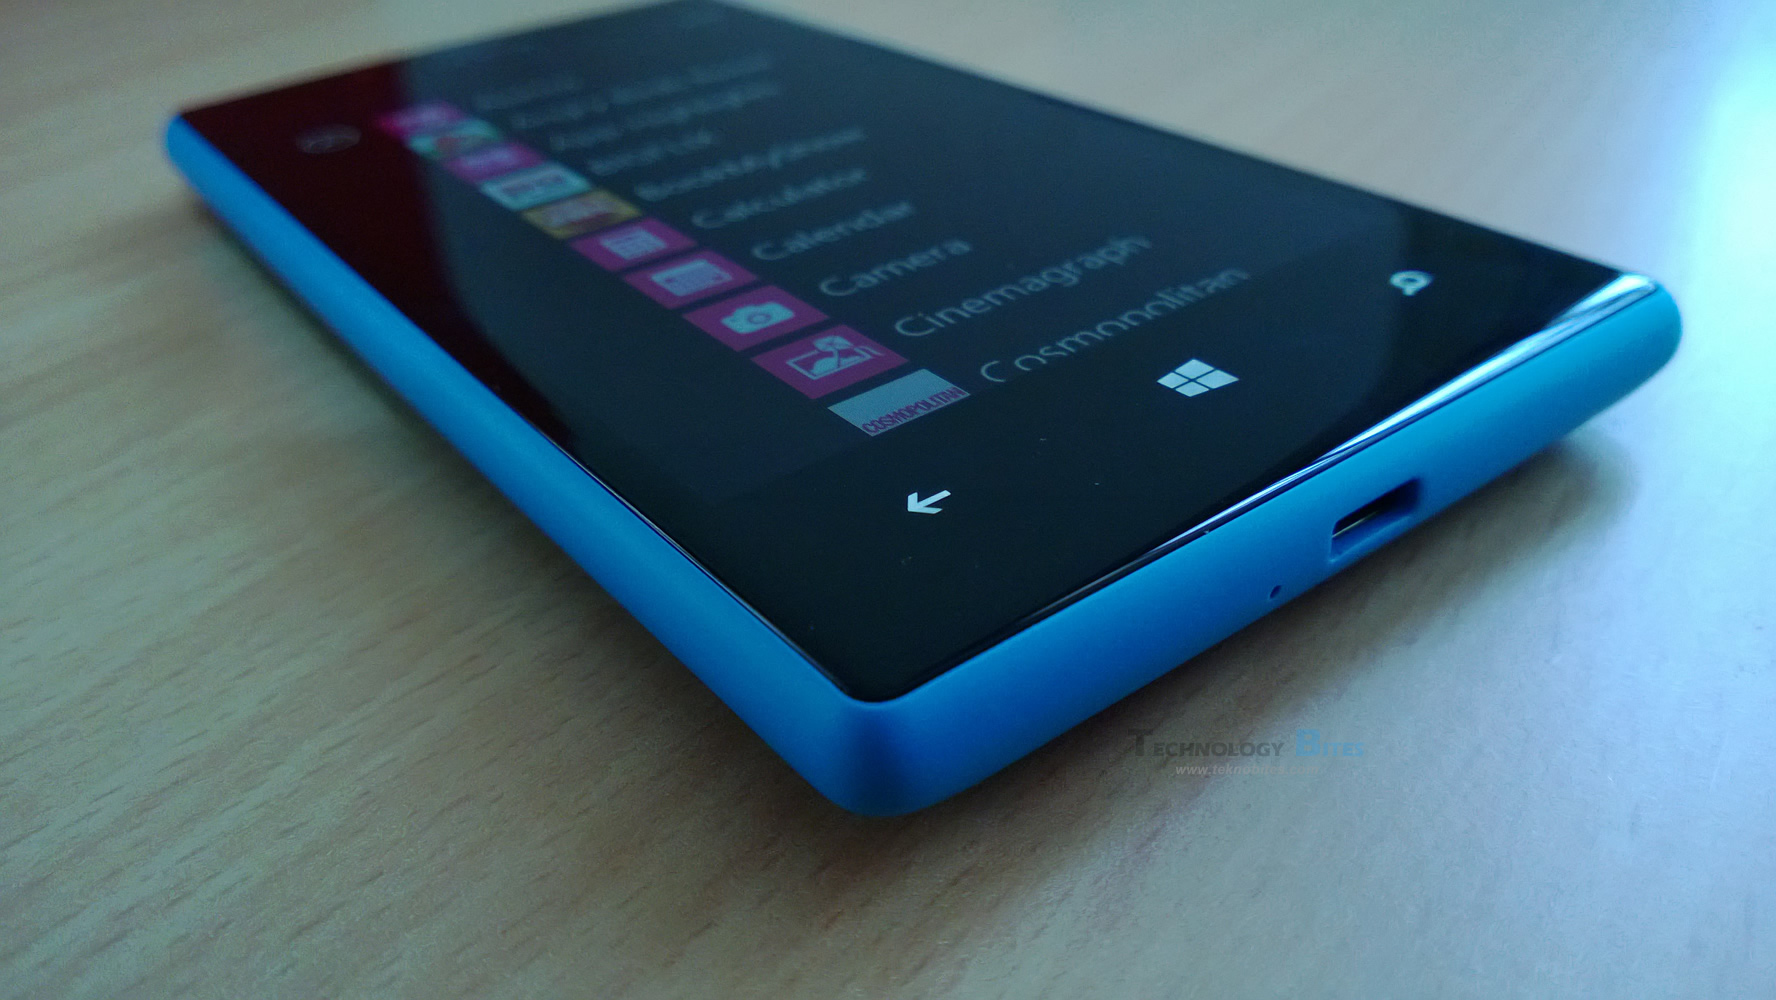 Smartphone Nokia Lumia 720: characteristics, instructions, settings, reviews 72